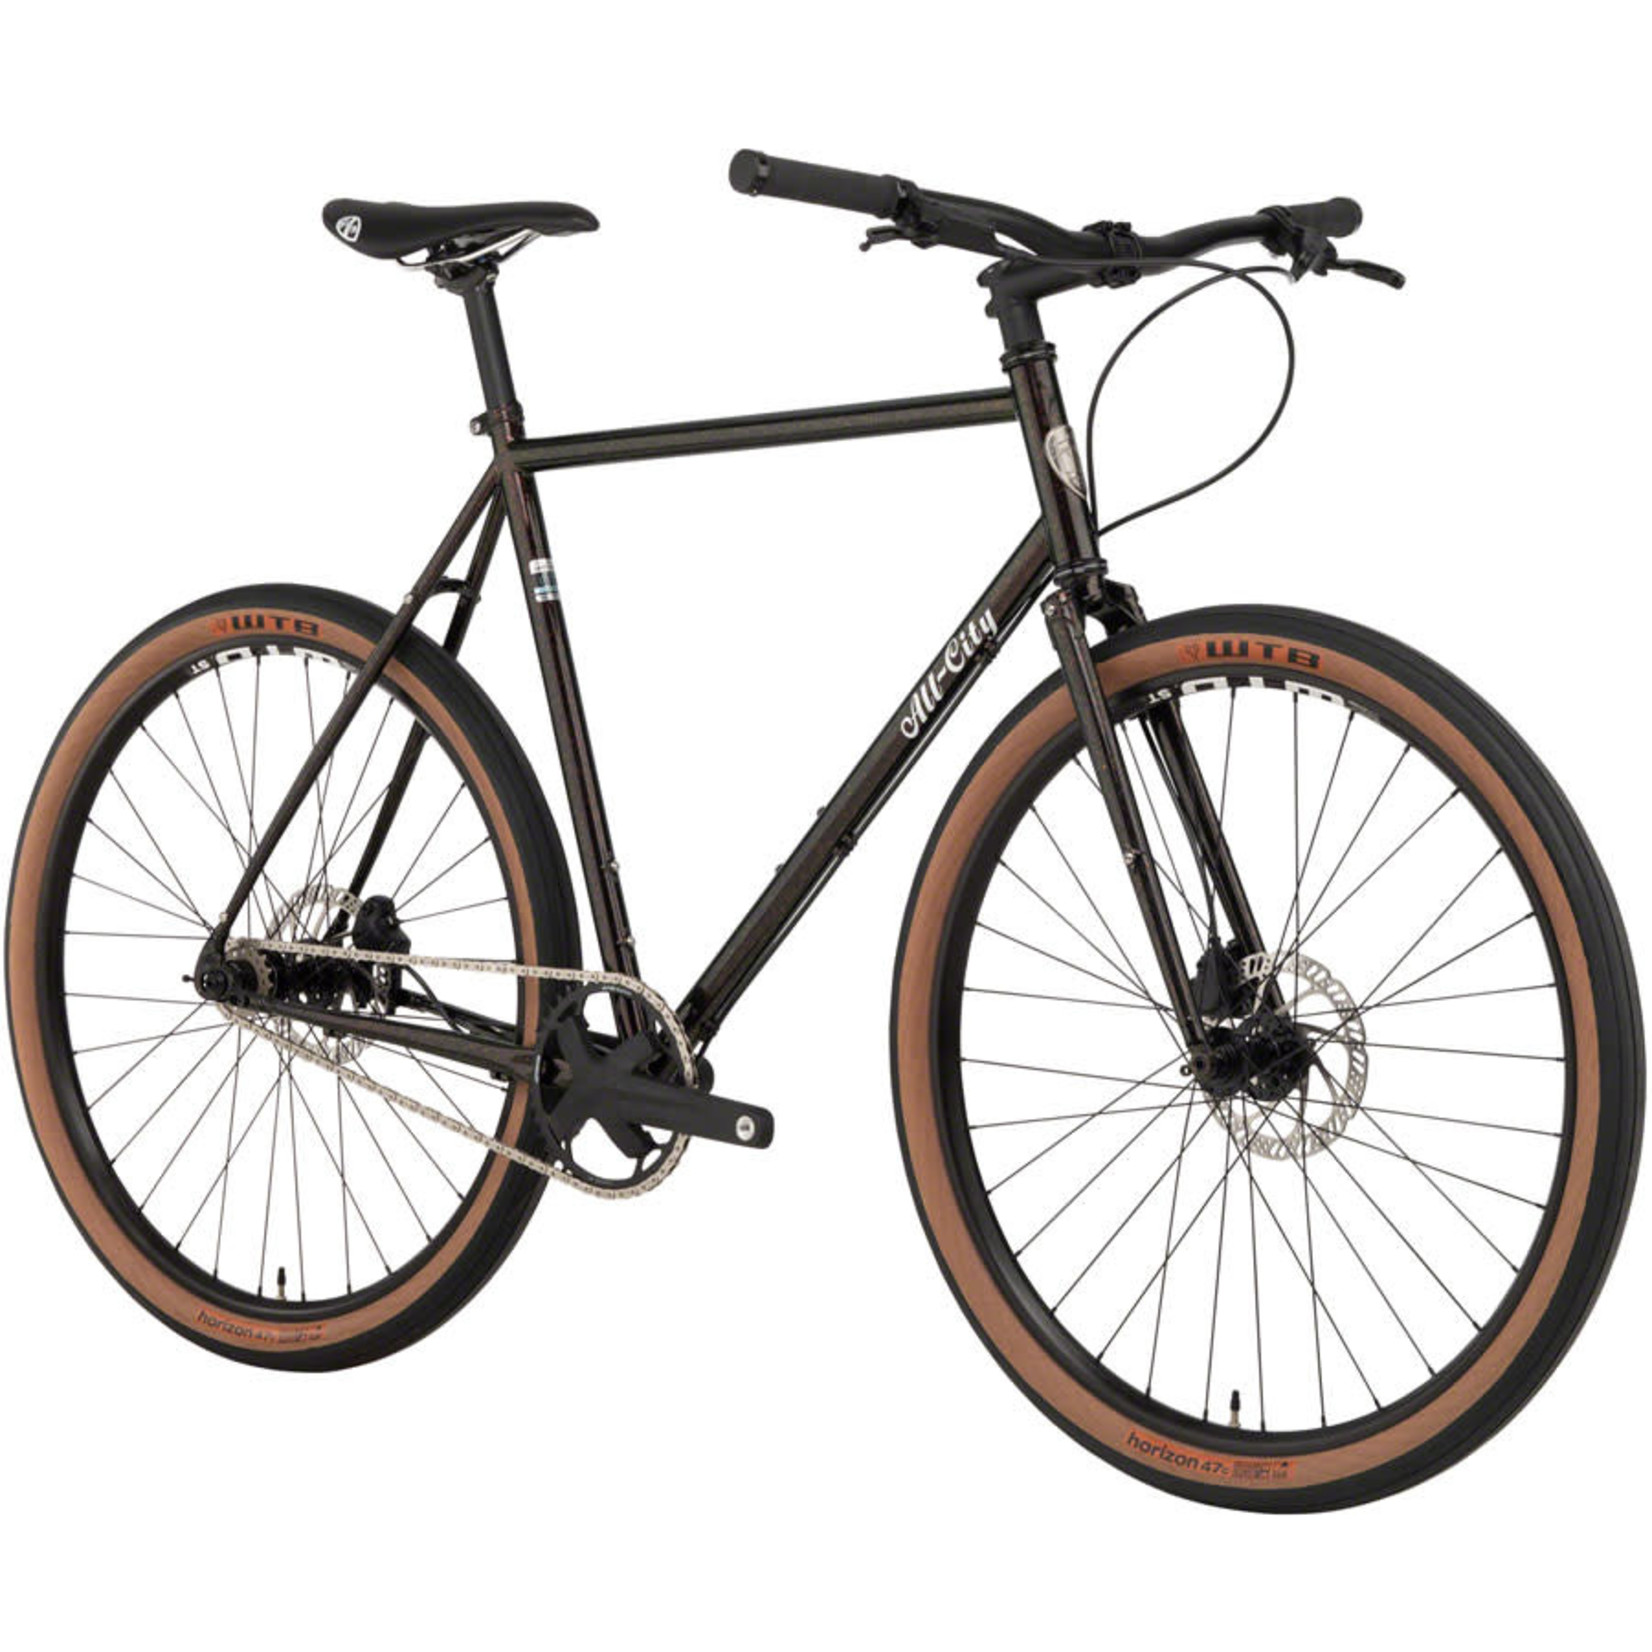 All-City All City Super Professional Single Speed